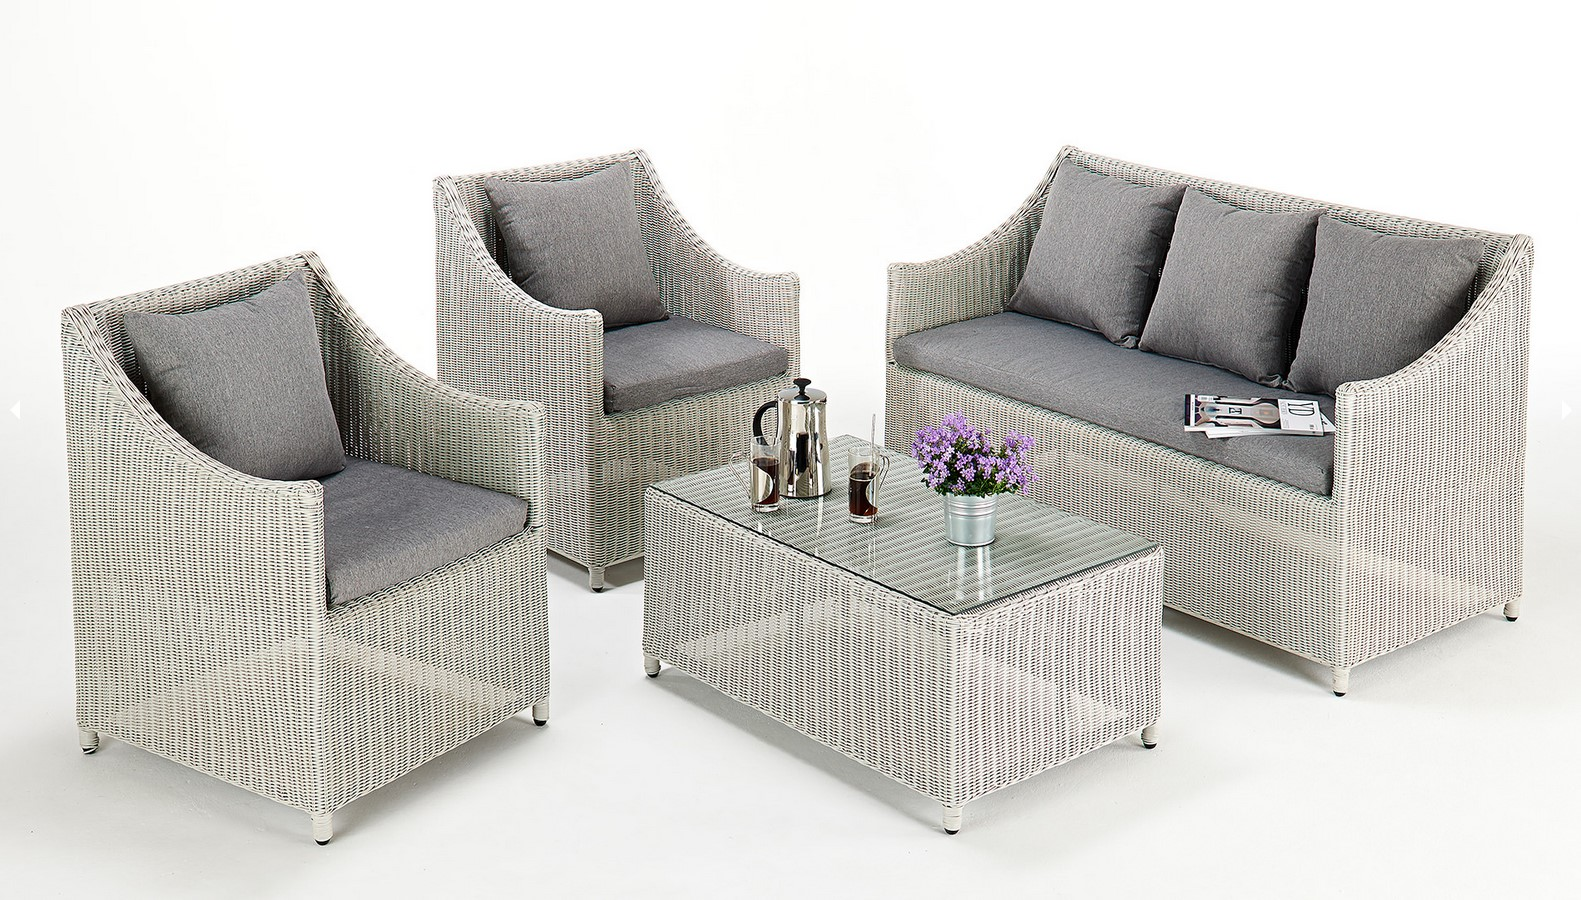 Rattan Garden Sofa Set Ebay Contemporary Rattan Sofa Set Wicker Furniture